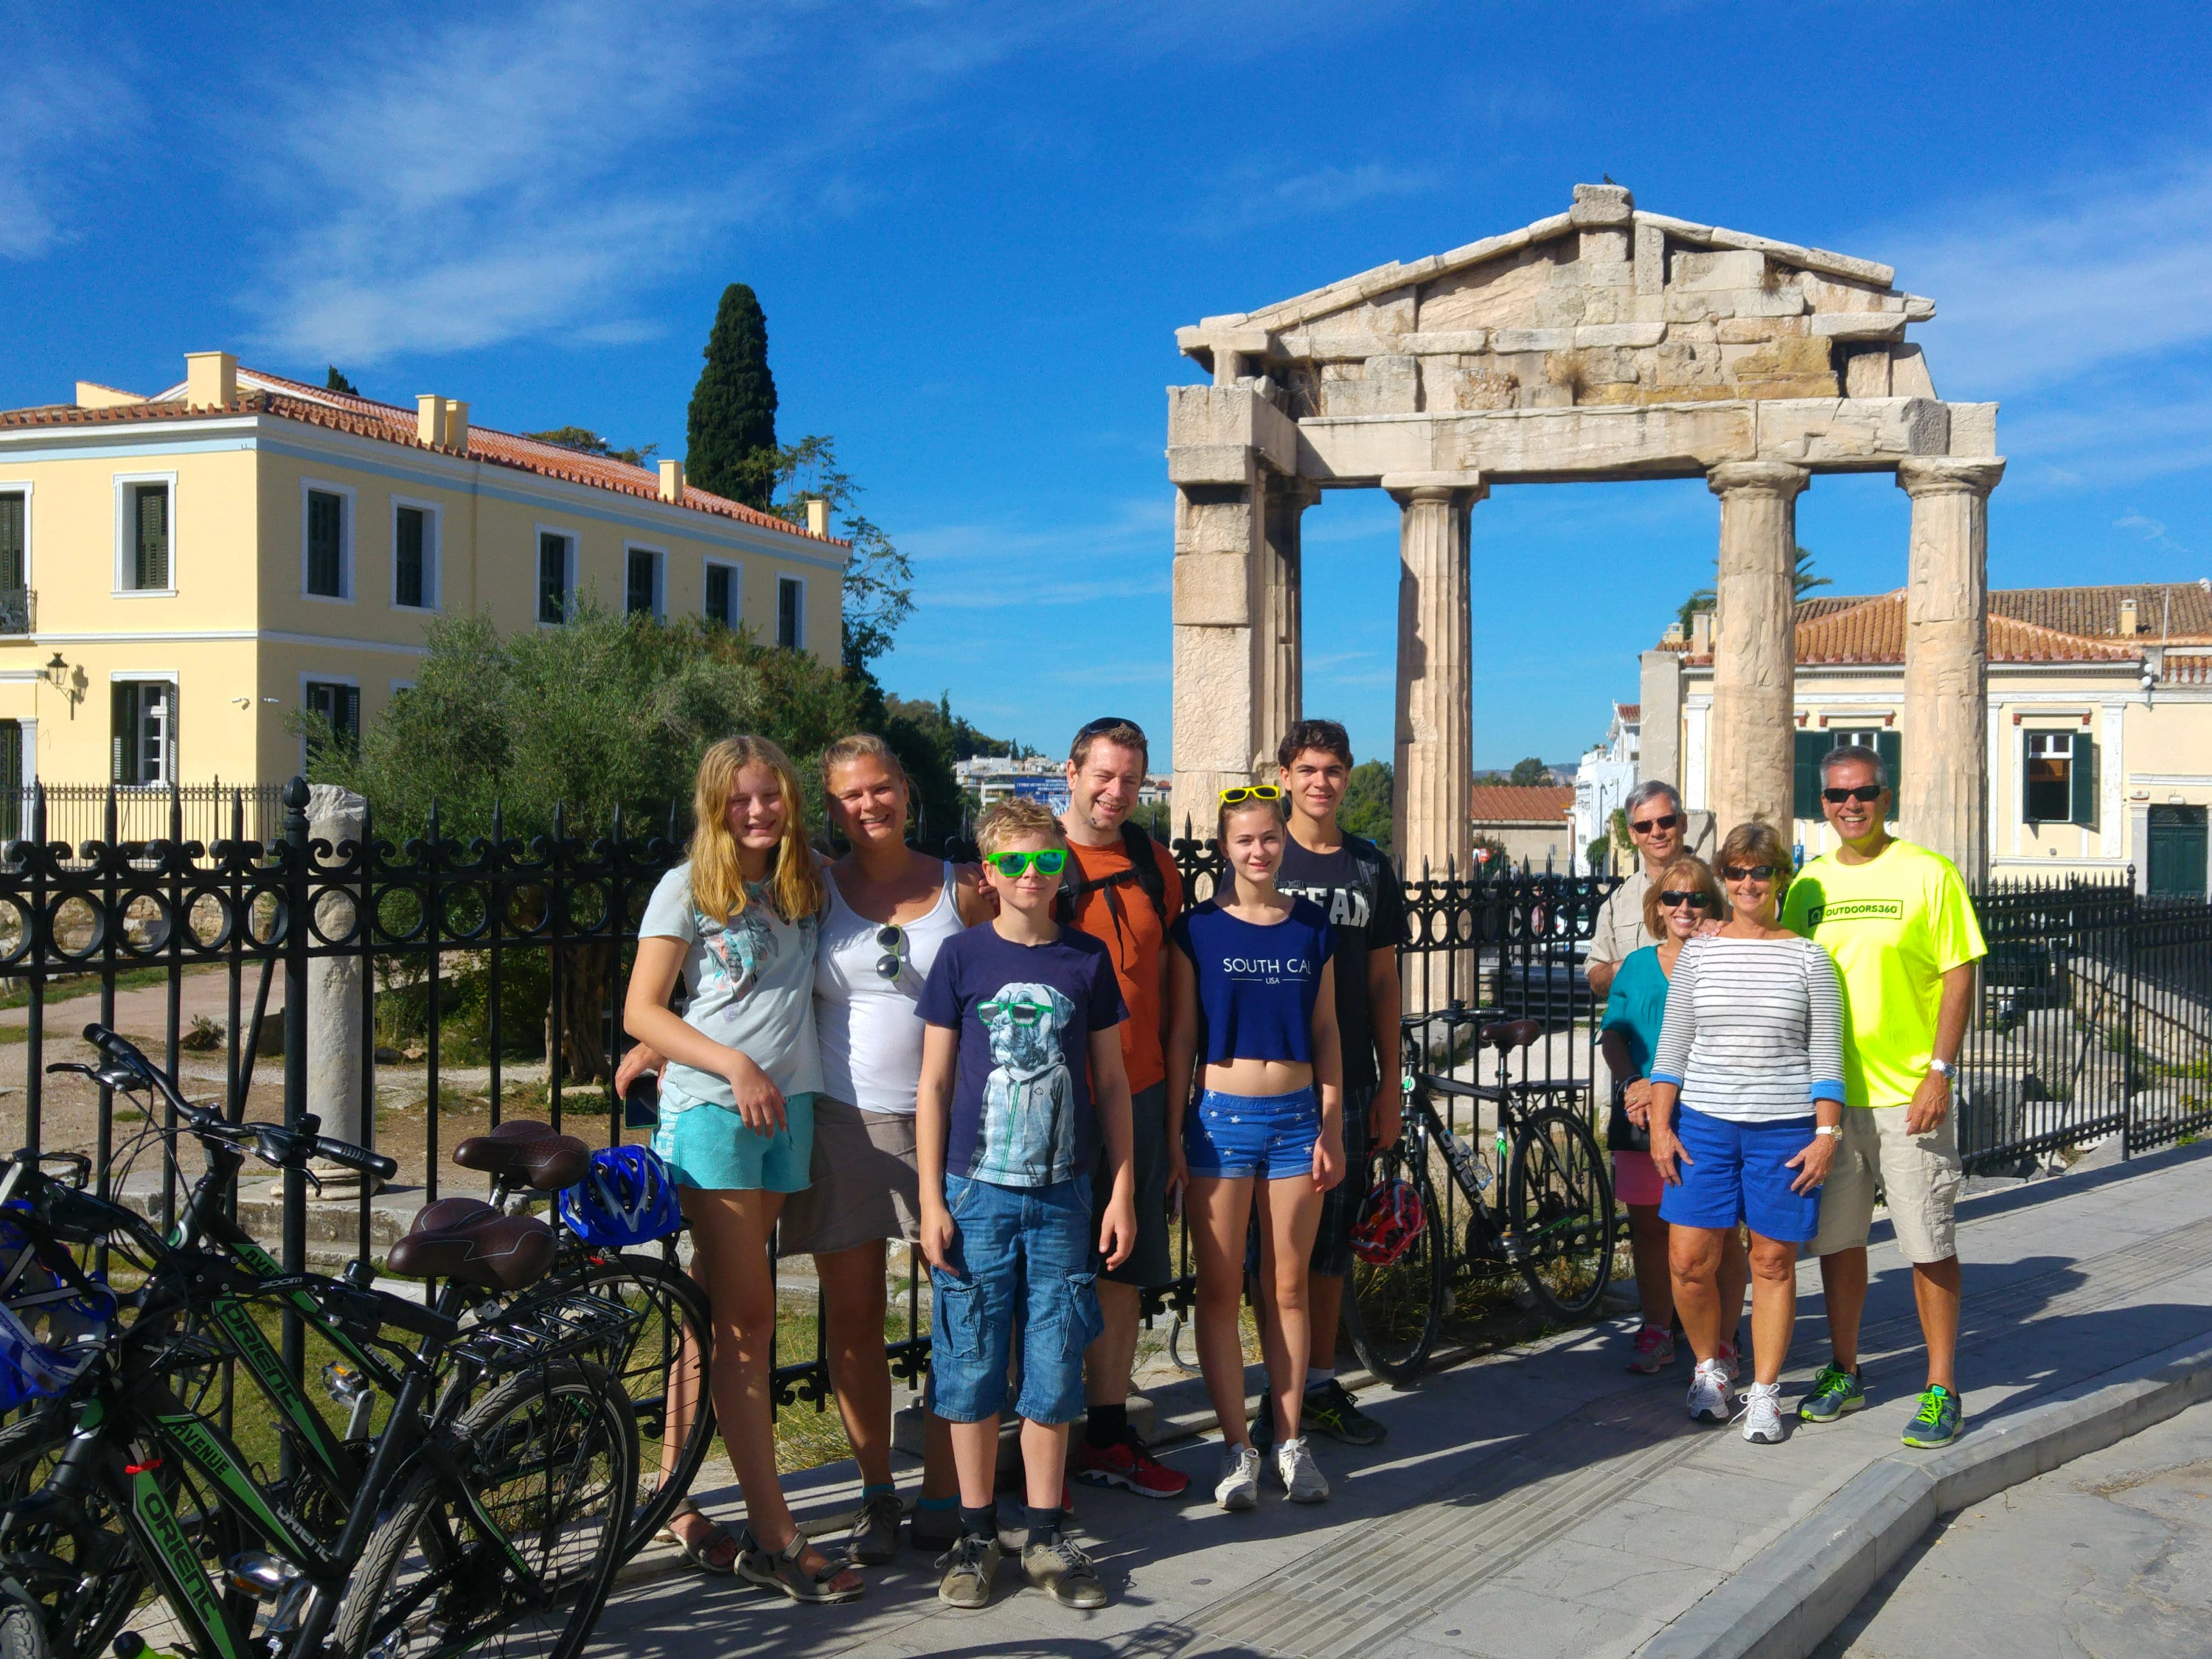 See Athens by Βike Family biking activity in Athens kidslovegreece Greece children sightseeing Acropolis city tour bicycles cycling monuments private specially designed amazing experience